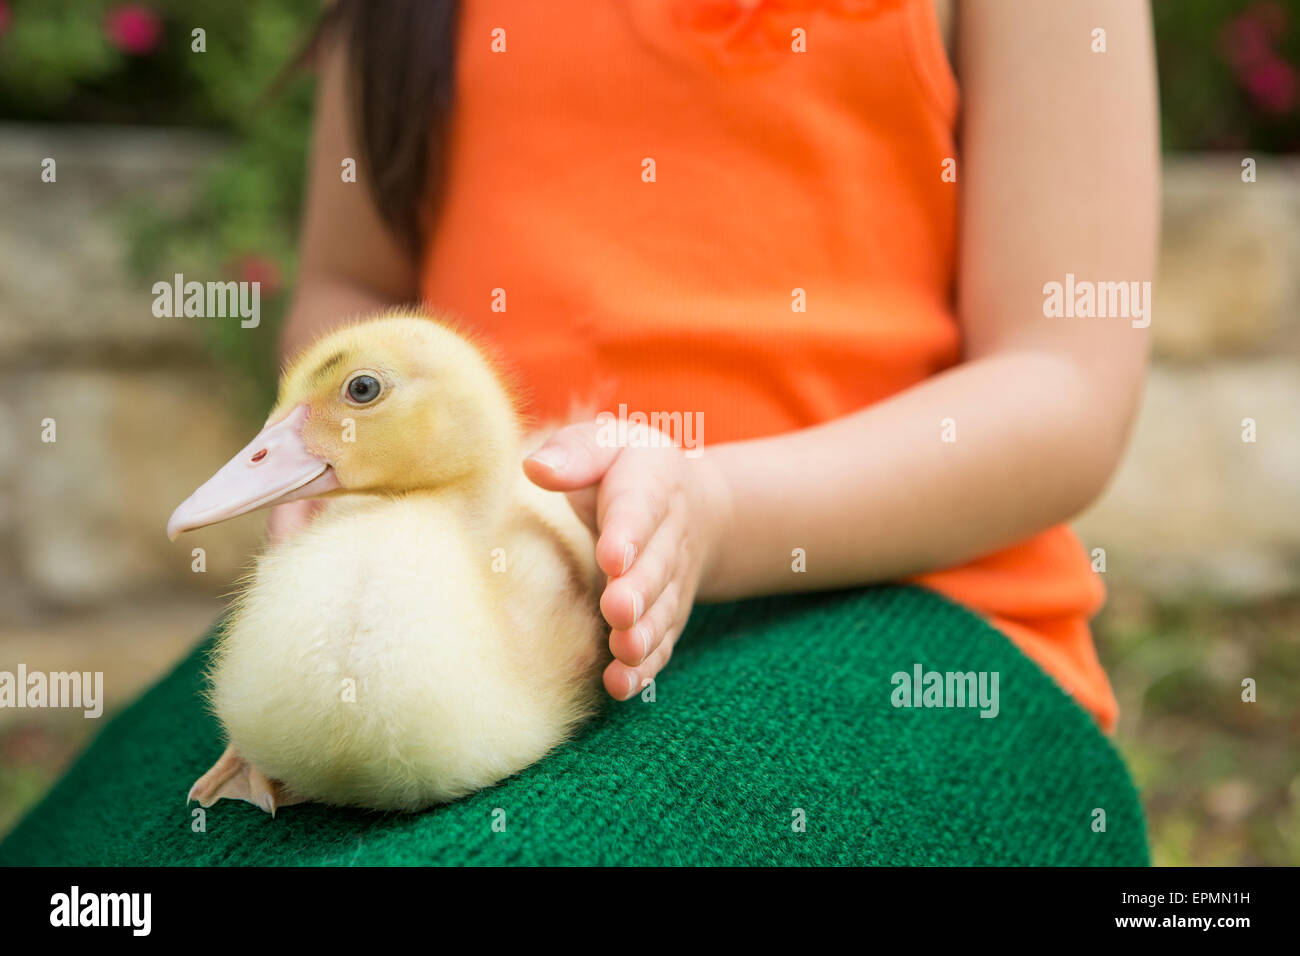 A child with a duckling on her lap. - Stock Image